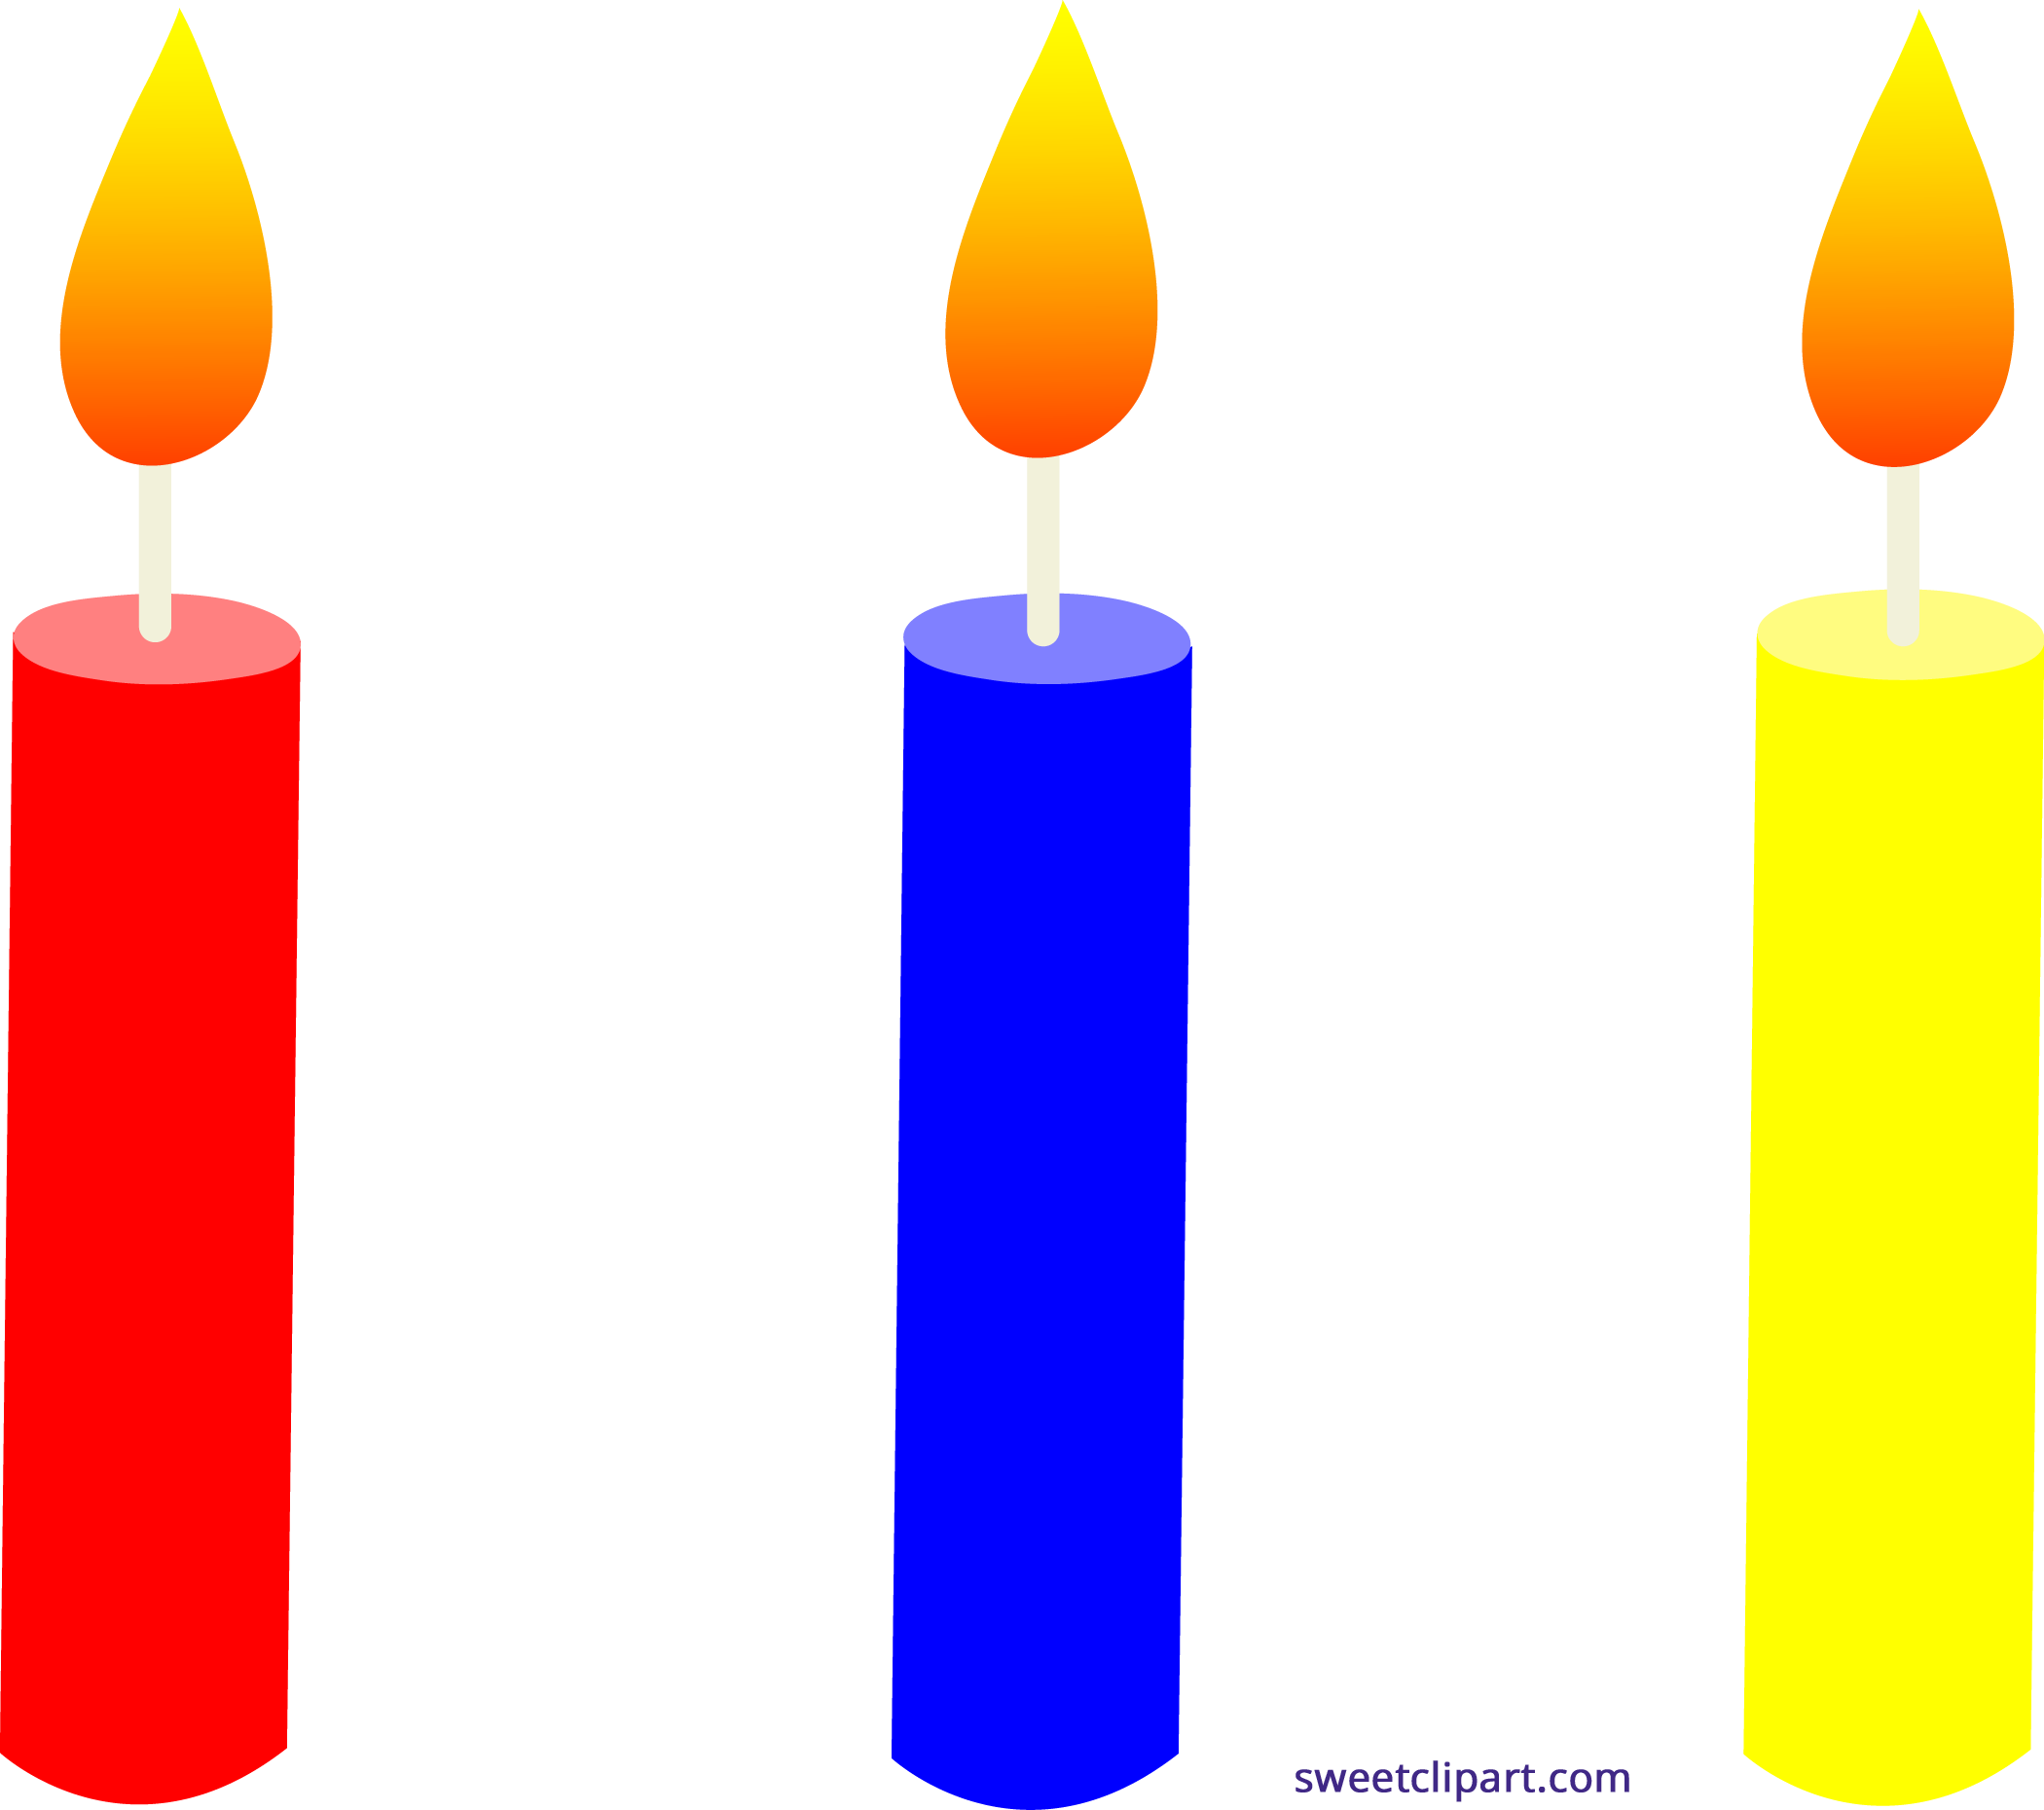 Lit number 1 and 5 birthday candles png. Holidays trio clipart sweet